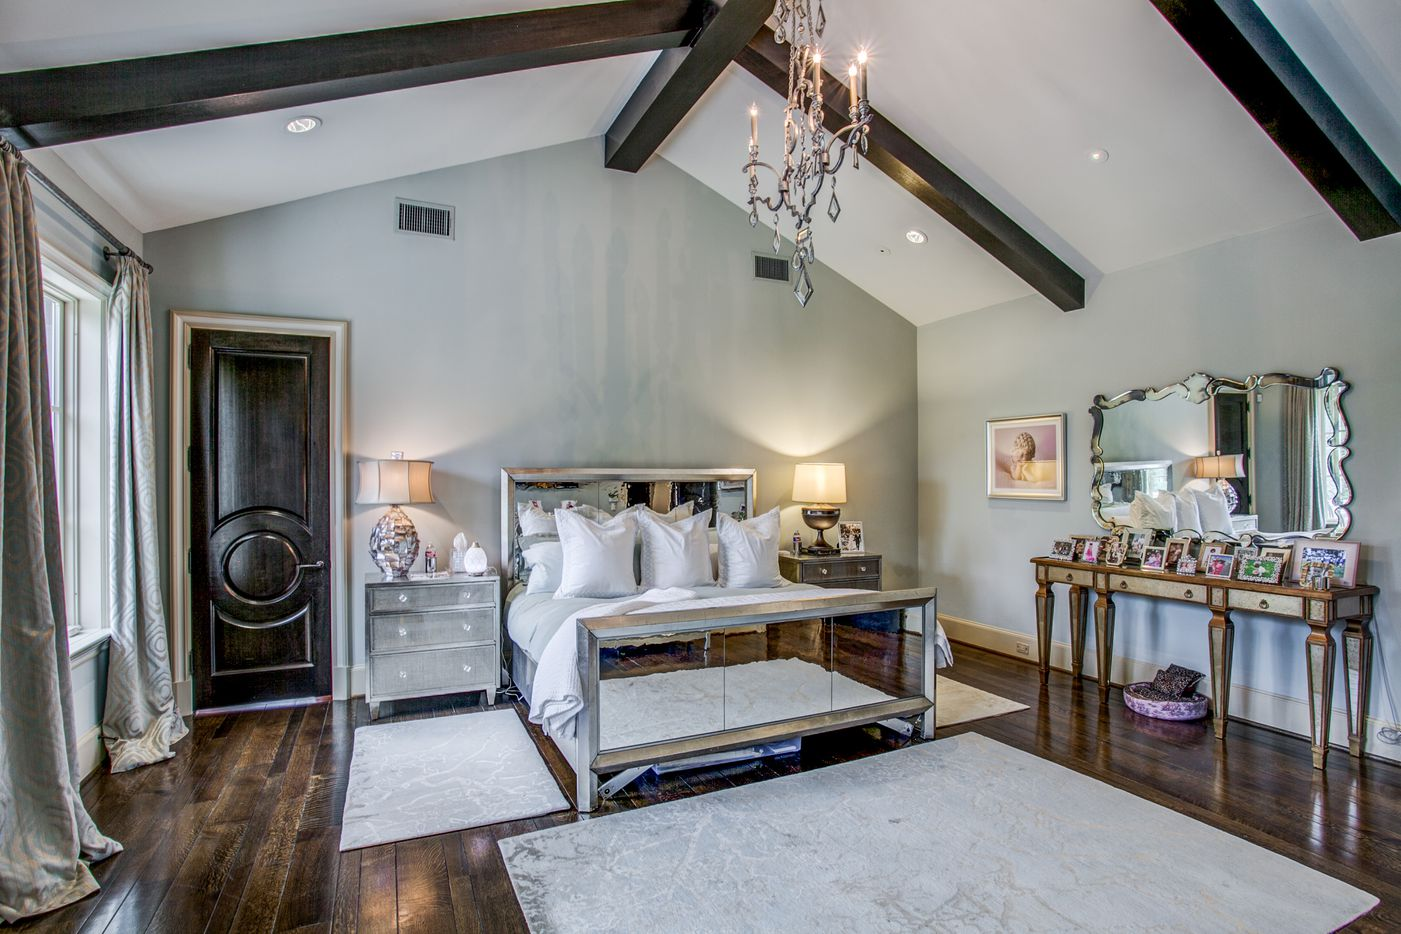 A look at the master bedroom of the Dallas home Kameron Westcott is selling.